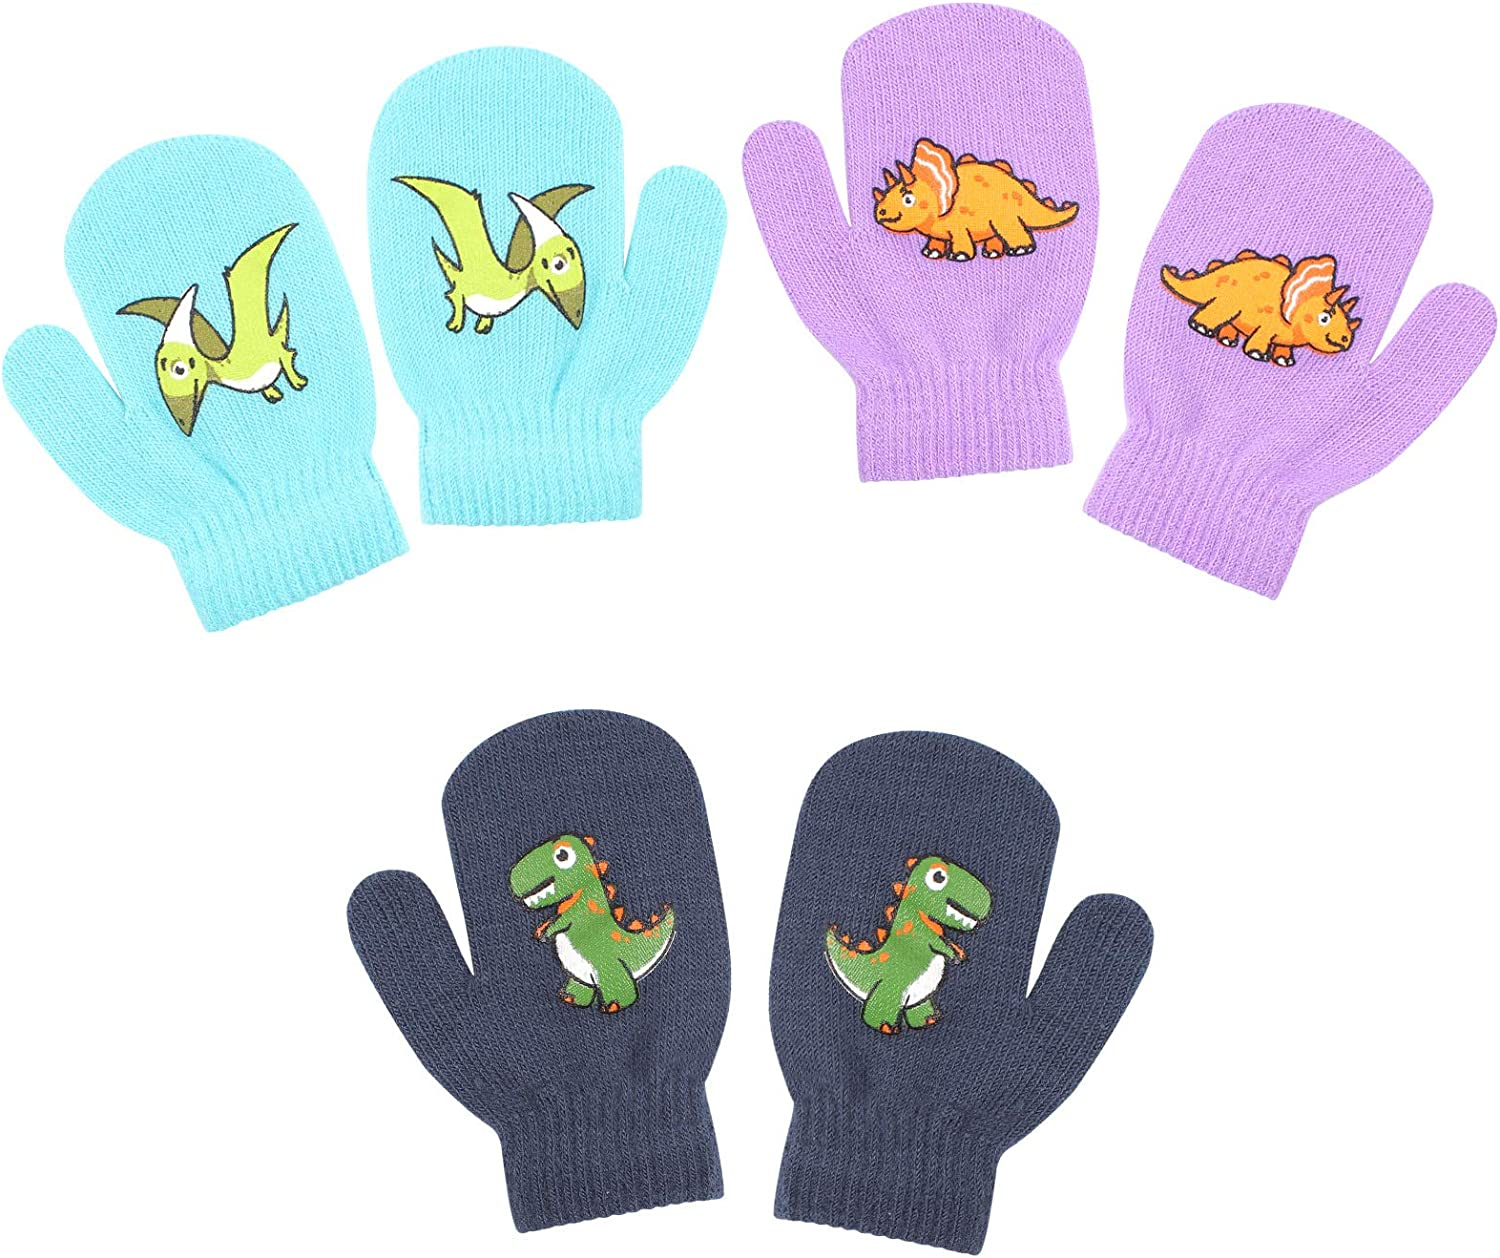 Toddler Knitted Mittens Autumn Baby New life Gloves Choice Chr Girls Winter Boys